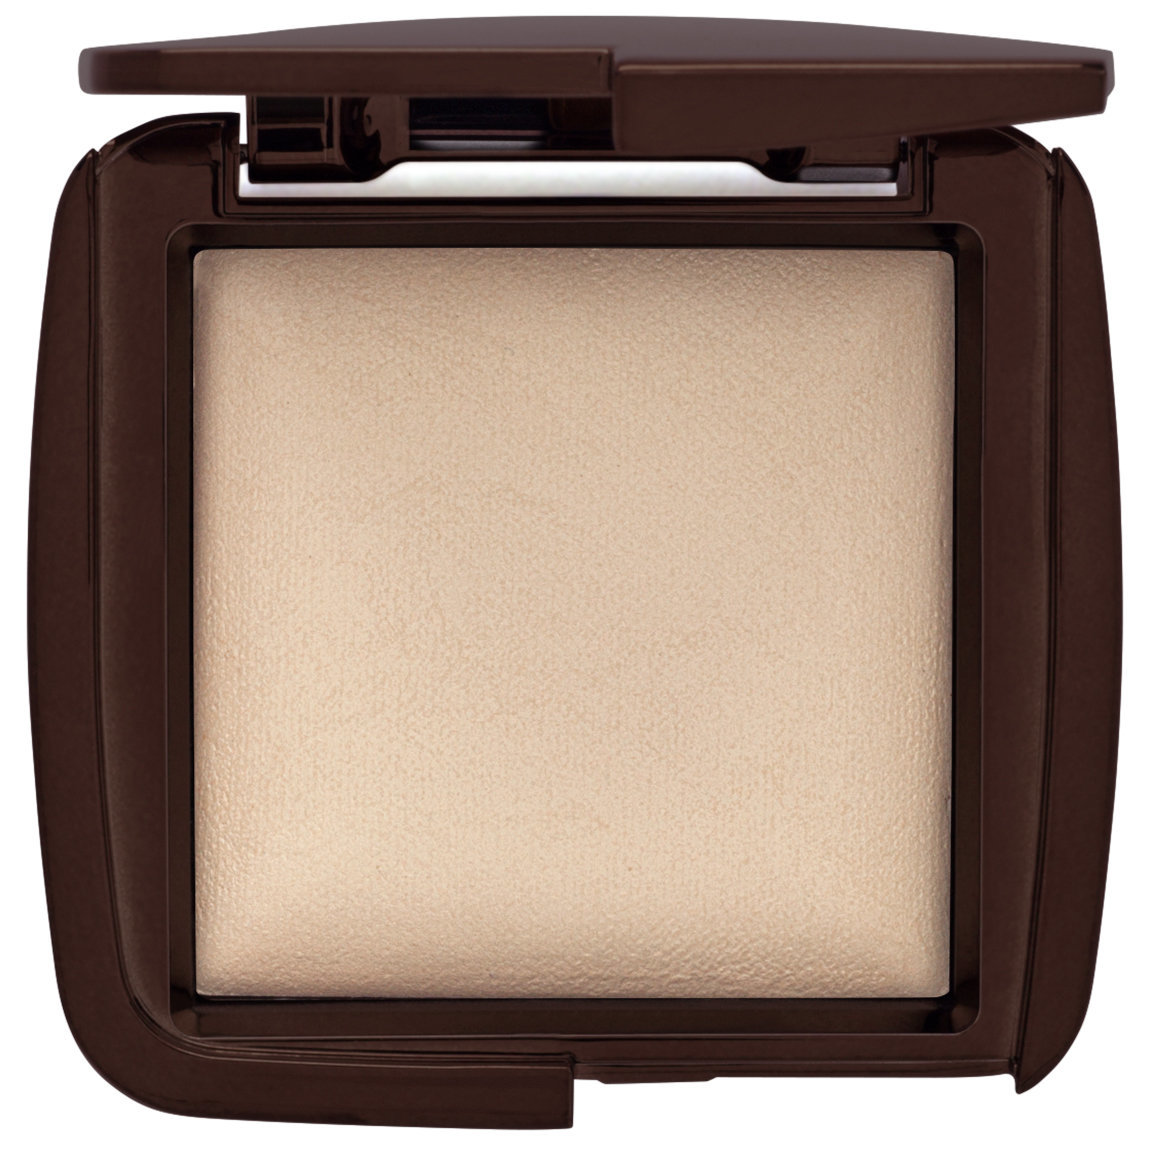 Hourglass Ambient Lighting Powder Diffused Light Product Smear.